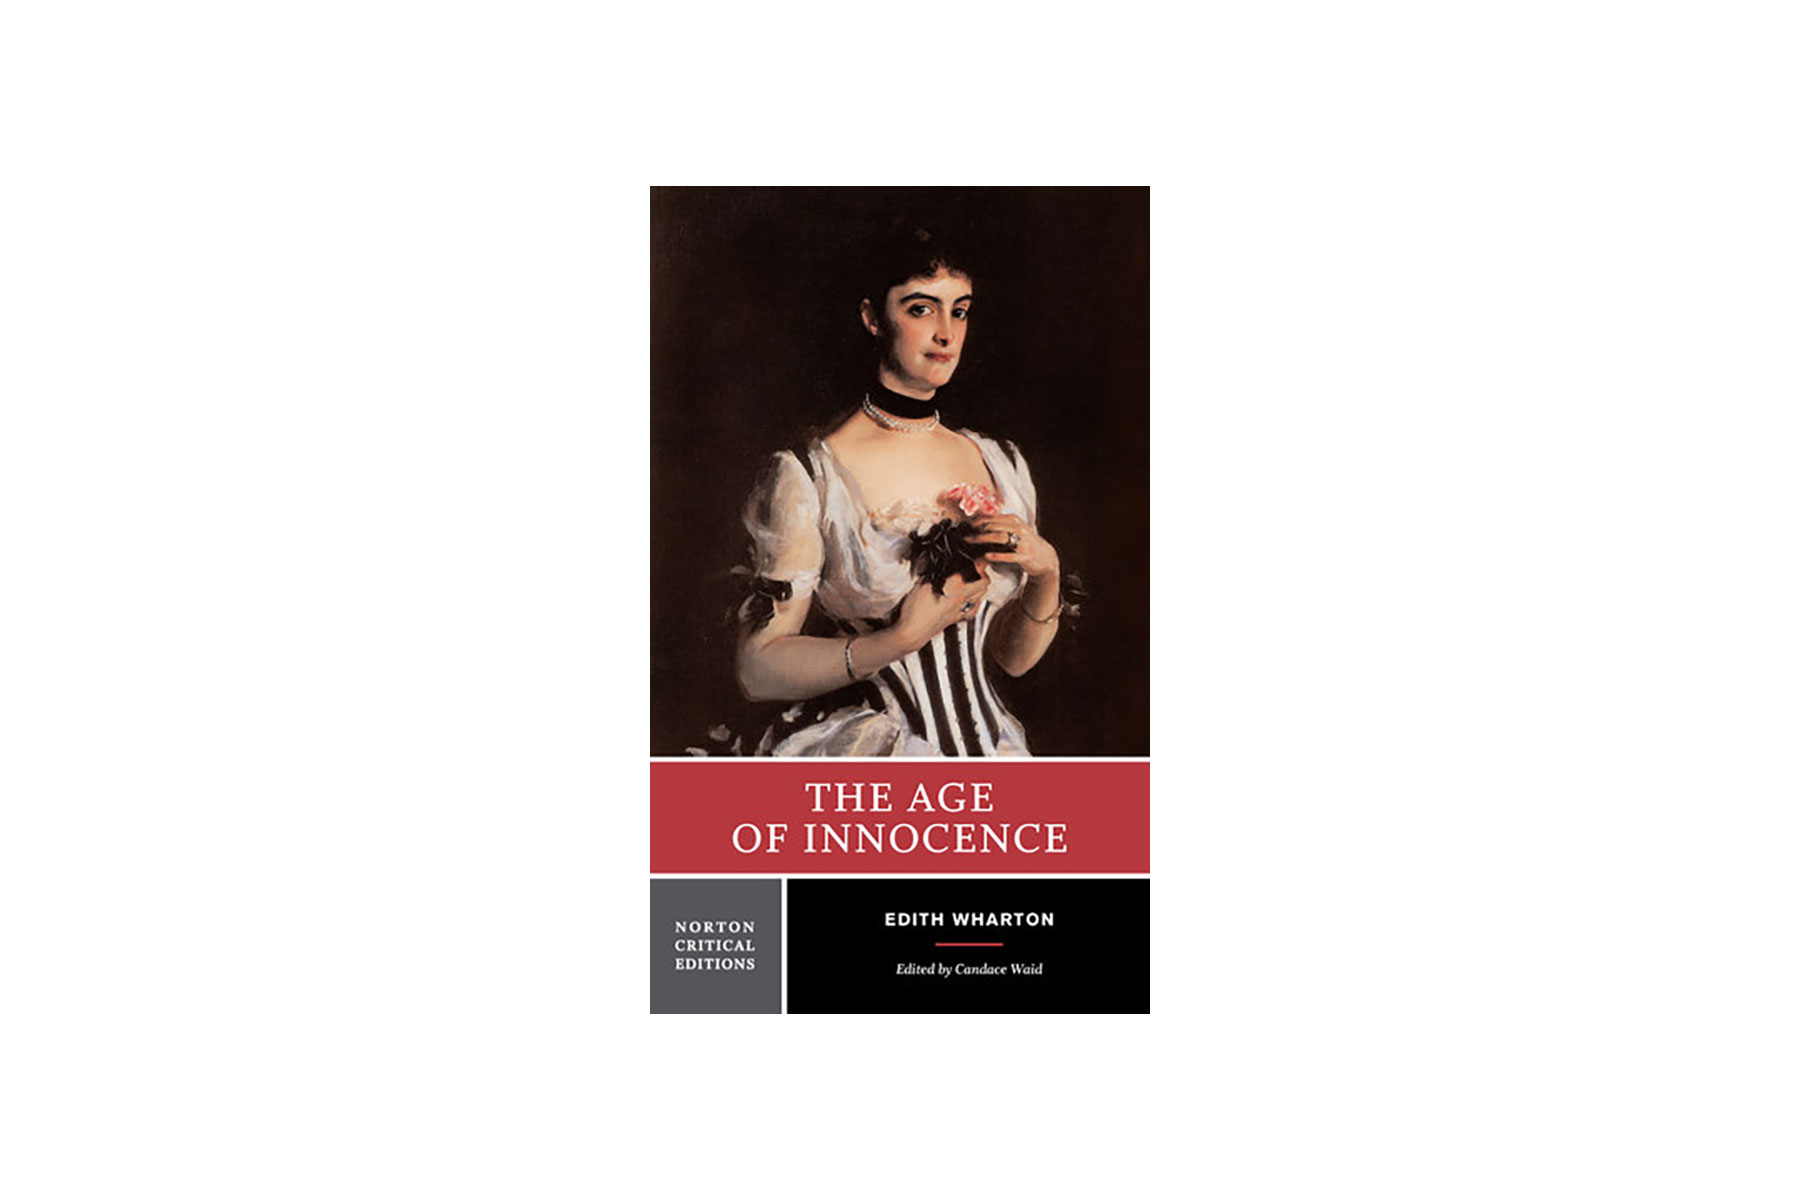 Age of Innocence, by Edith Wharton